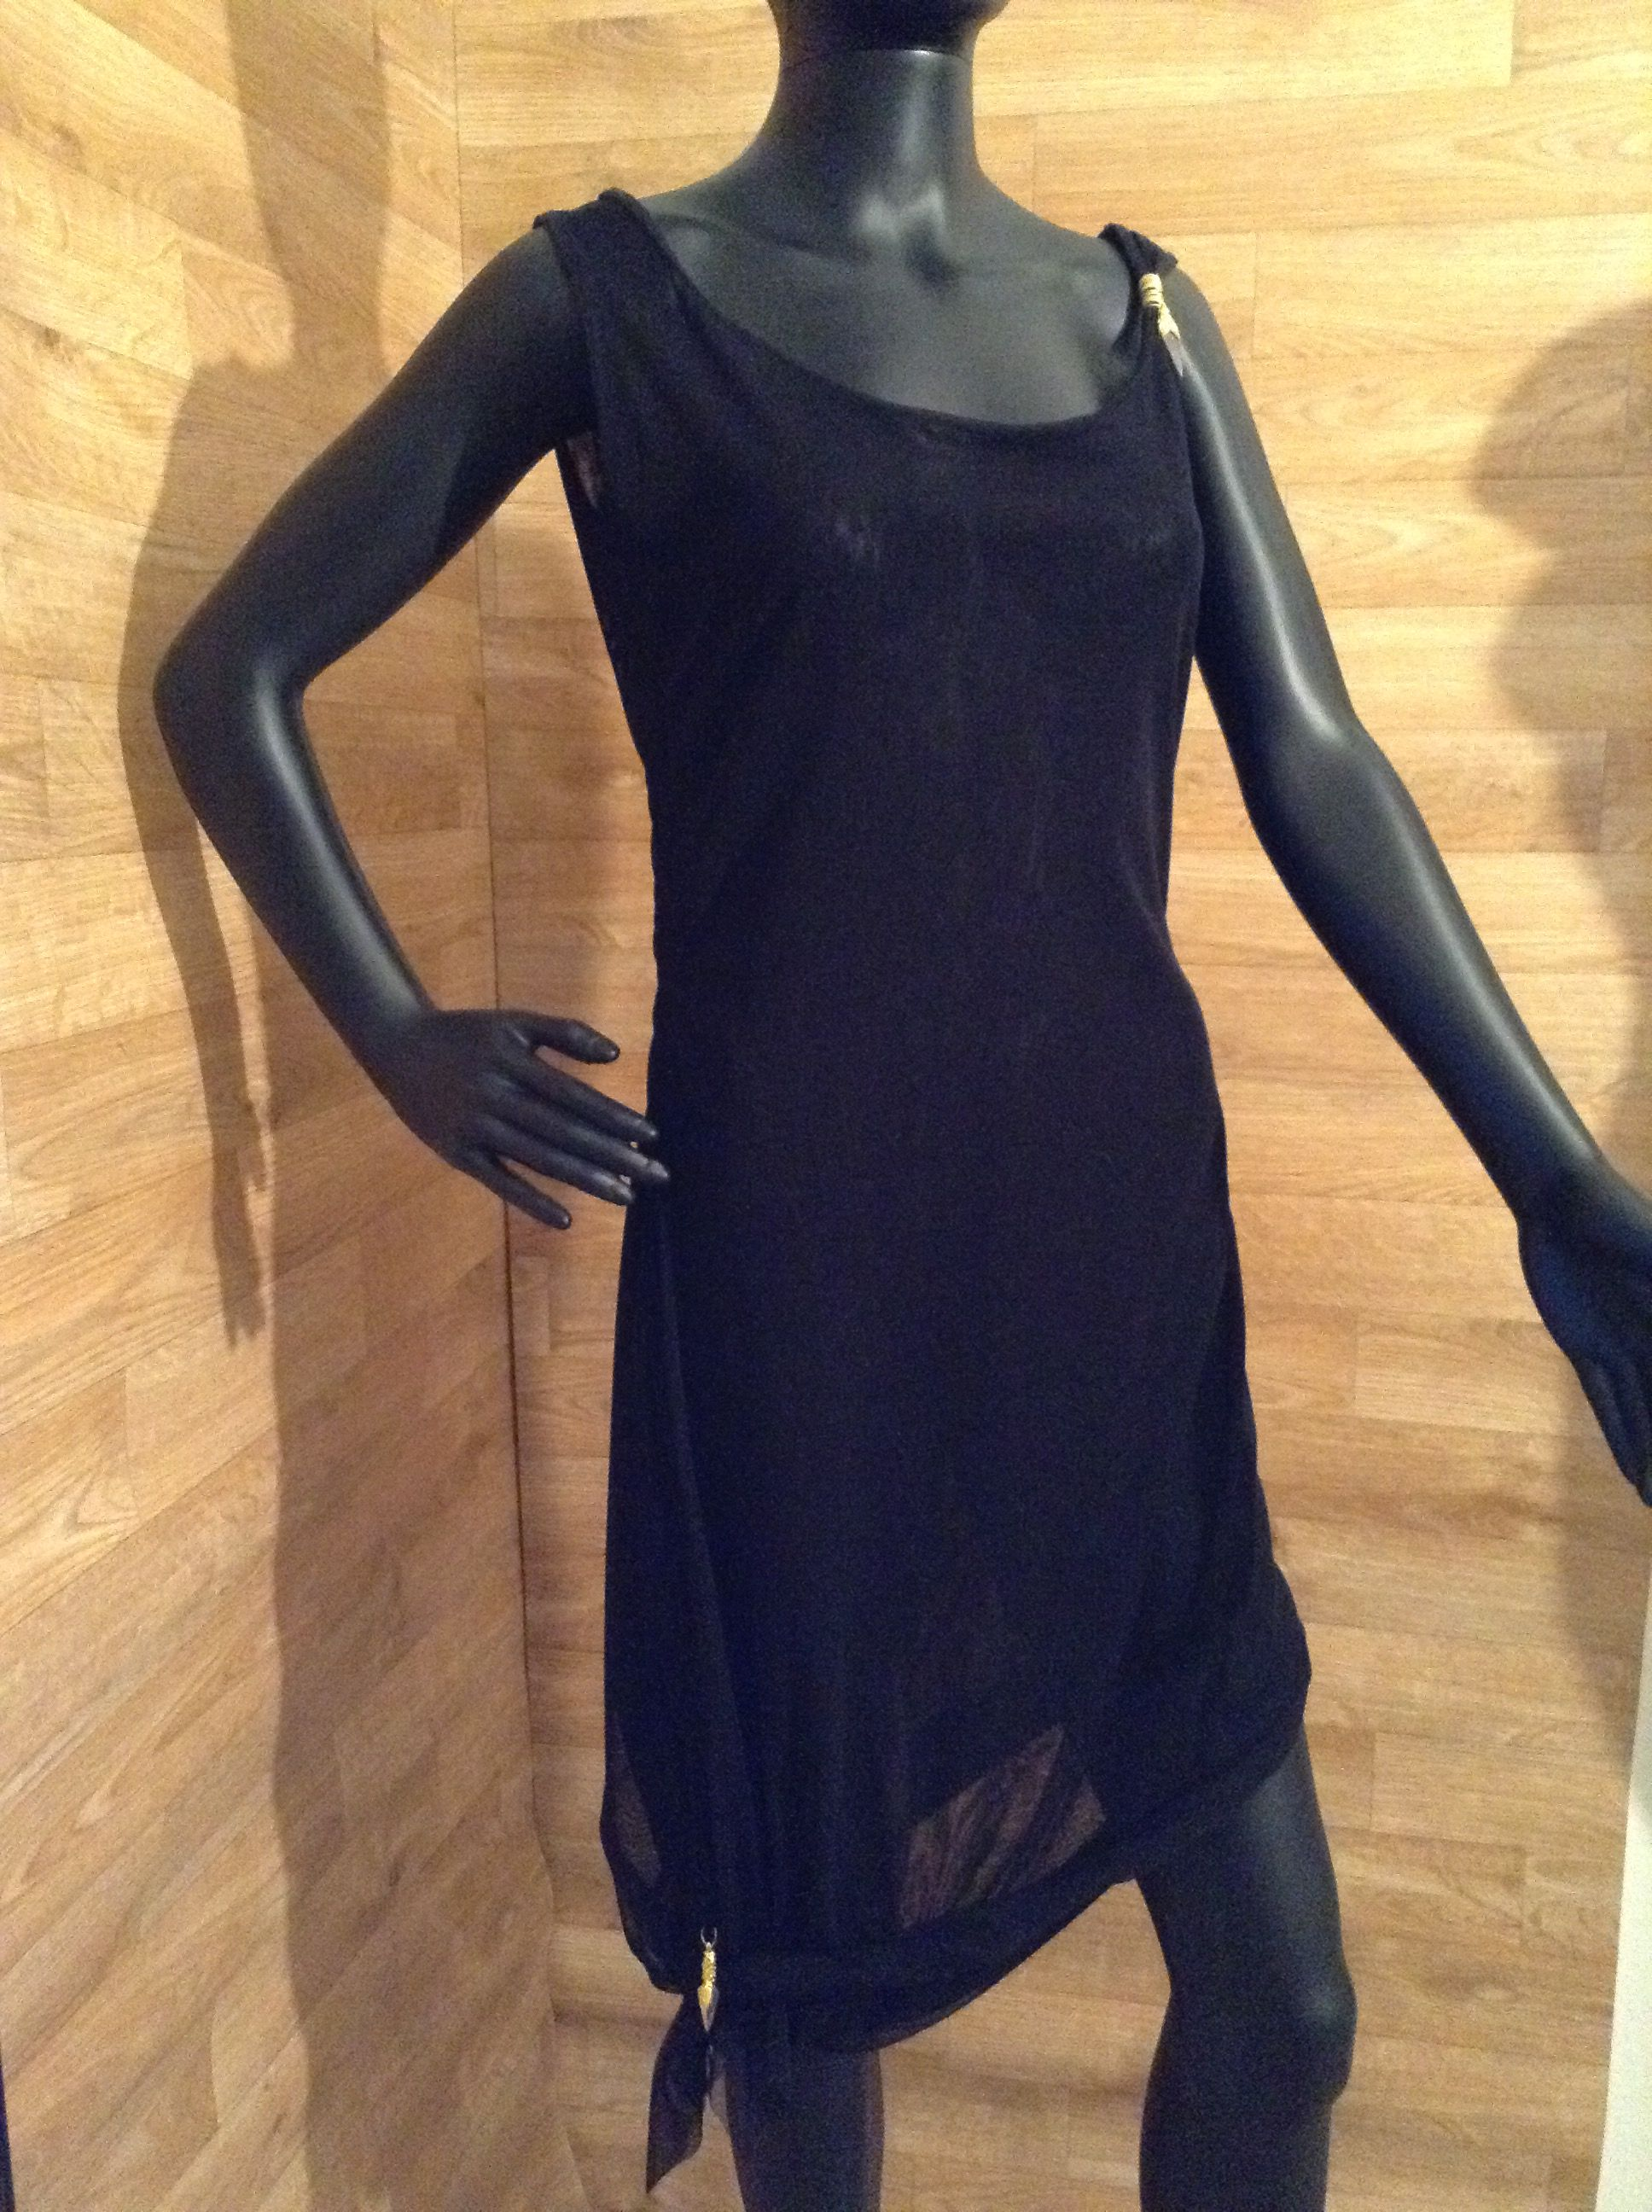 LBD WITH GOLD CHARMS SEE THROUGH SHEER